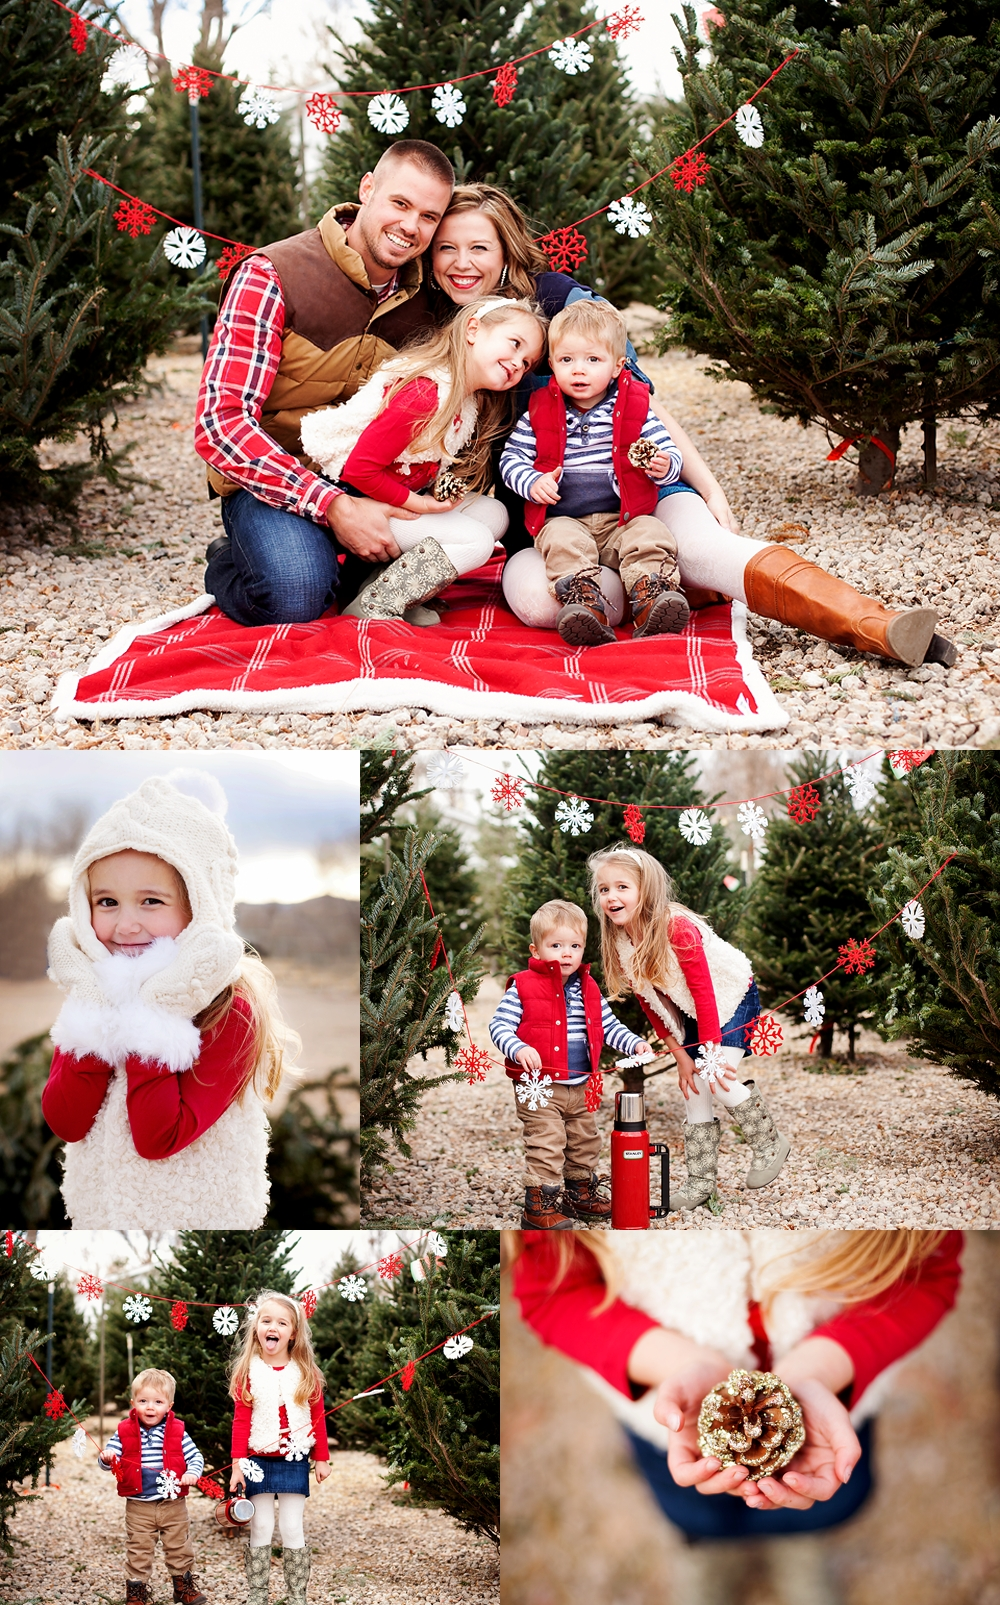 10 Cute Cute Family Christmas Picture Ideas a very merry session merry garlands and backyard 2020